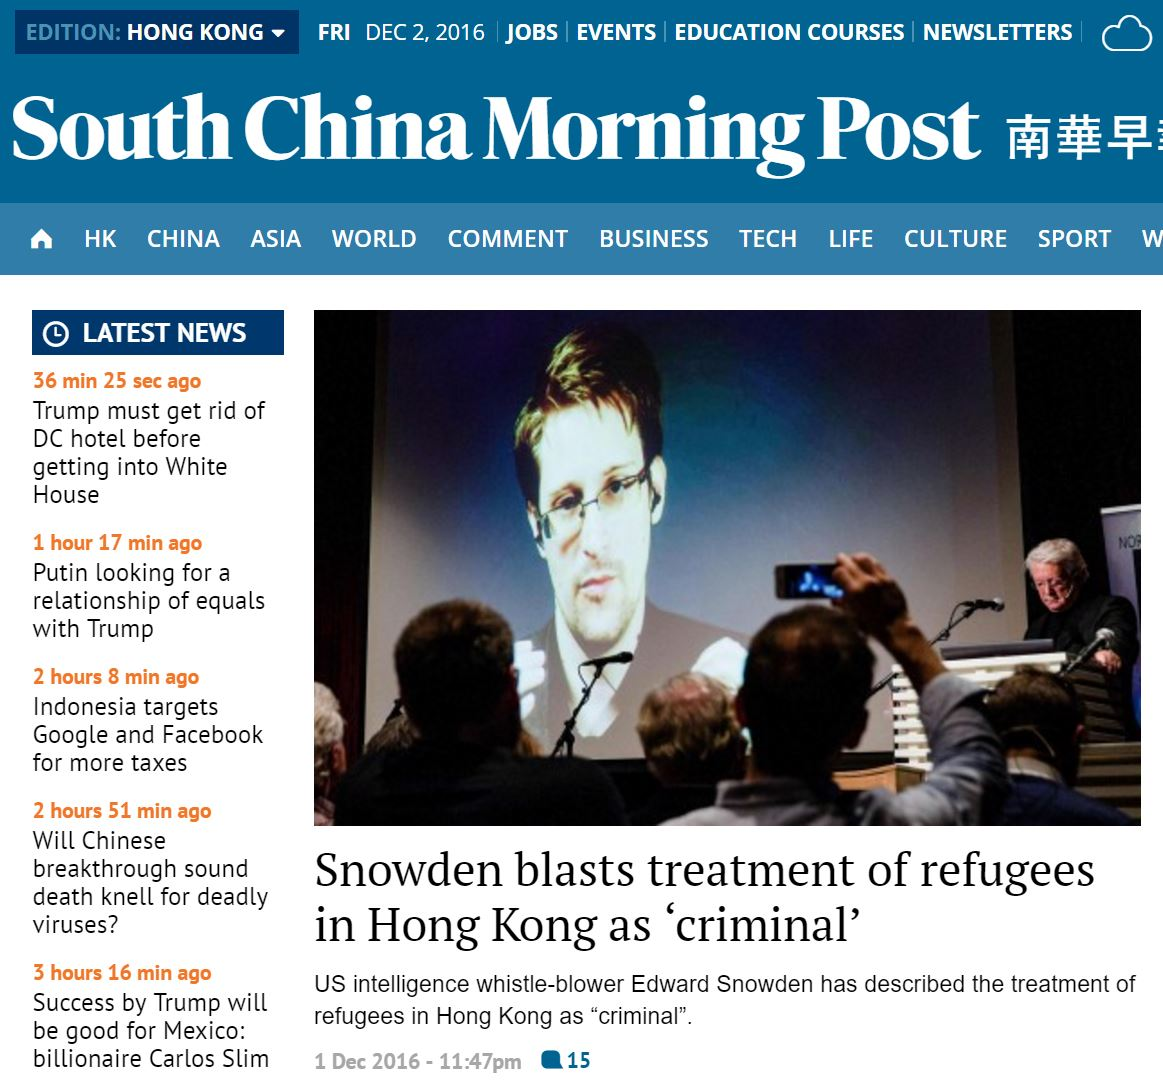 SCMP - Snowden blasts treatment of refugees in Hong Kong as criminal